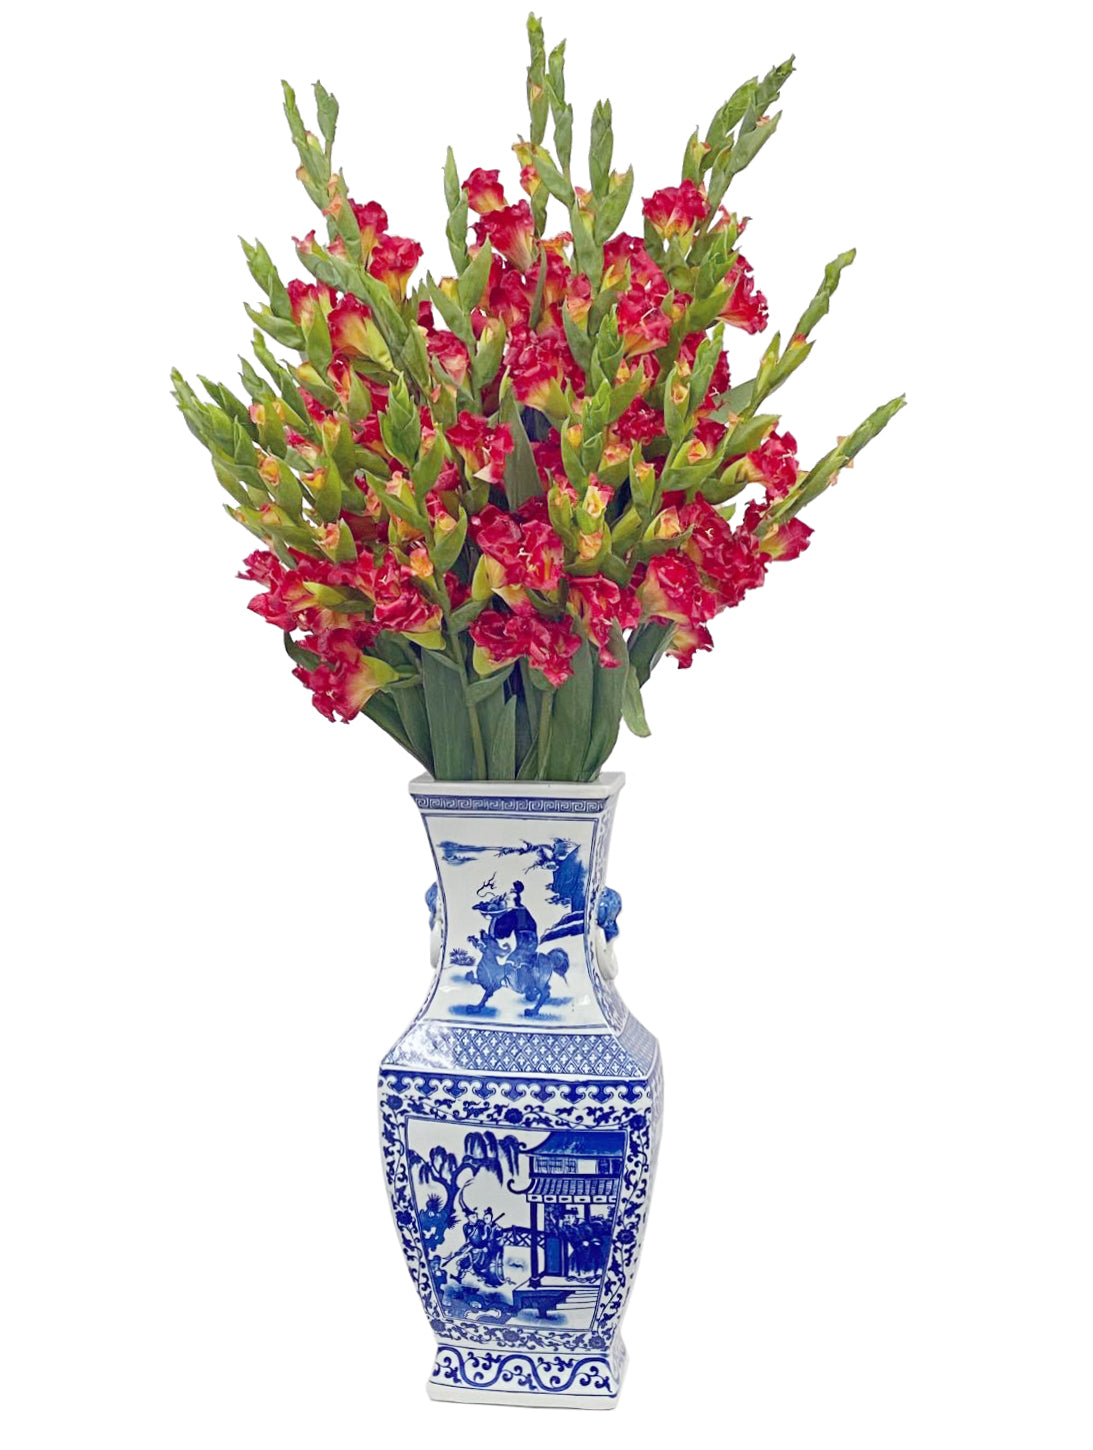 RED GLADIOLUS IN VASE 45""